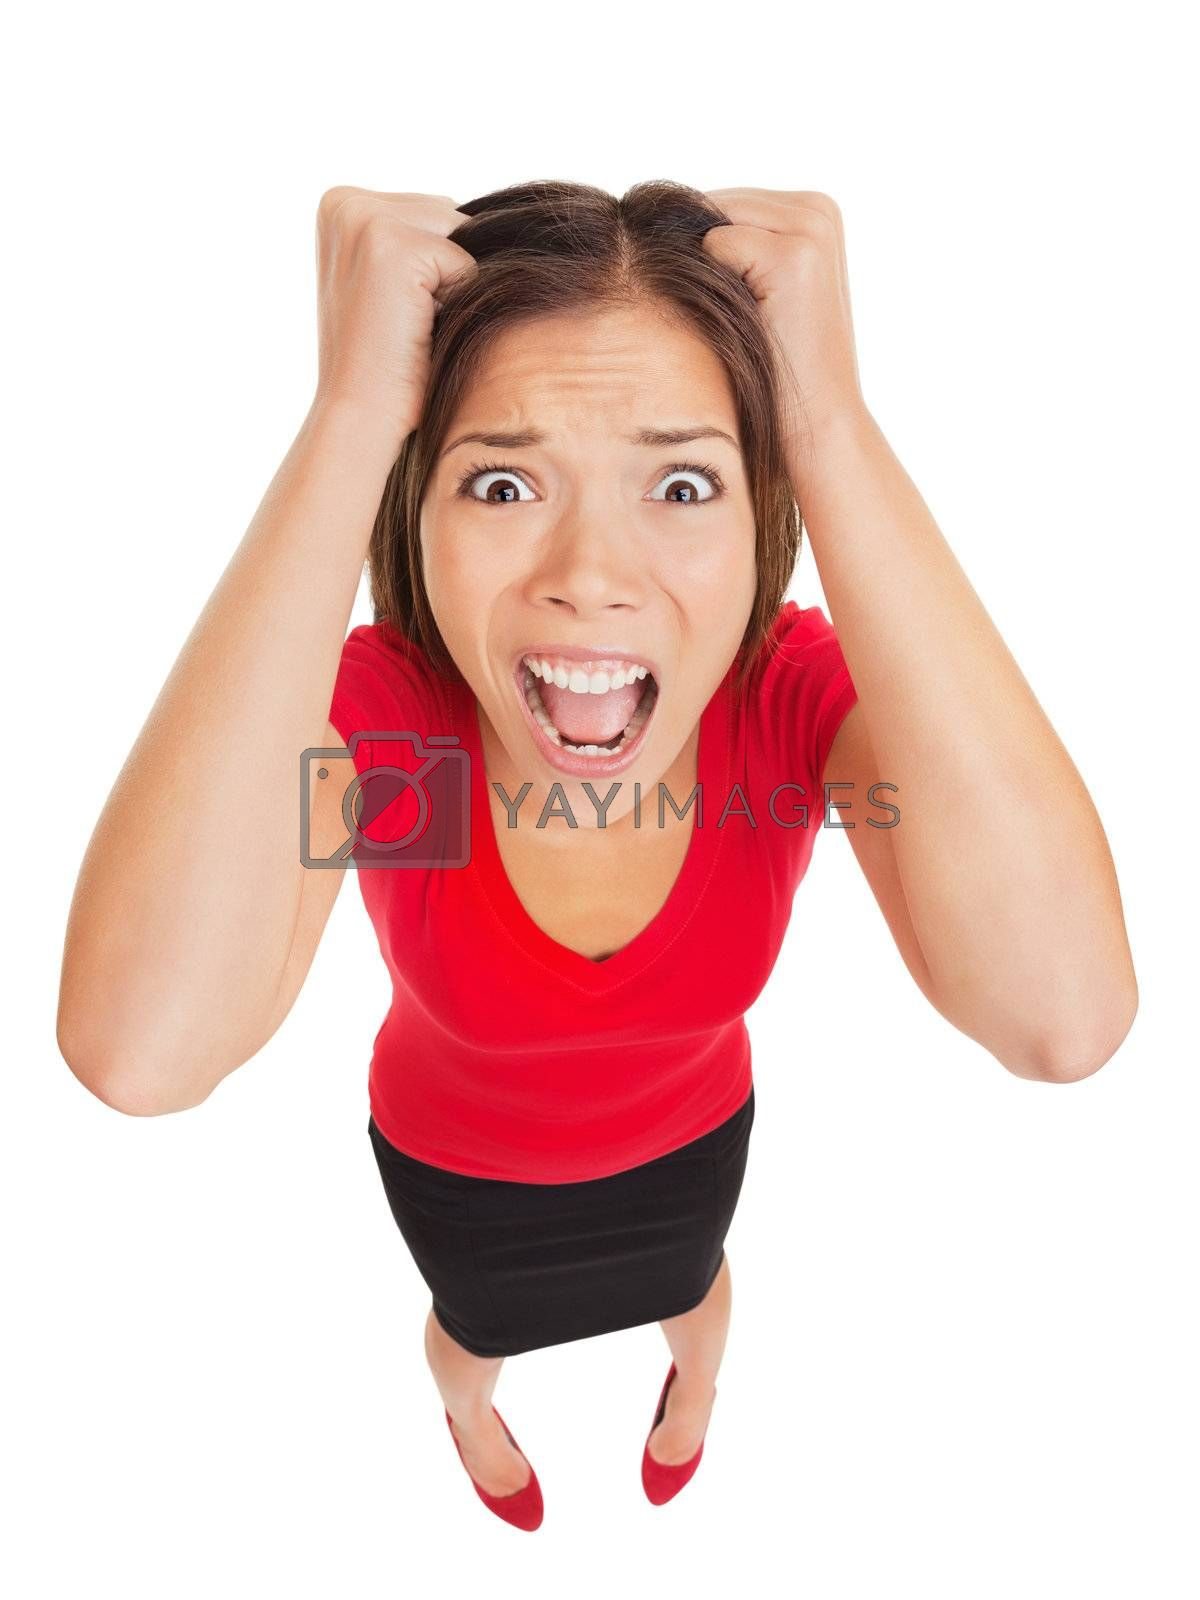 Appalled woman with a terrified expression looking up into the camera in a humorous full body high angle studio portrait isolated on white background in high angle view. Funny multicultural Asian.